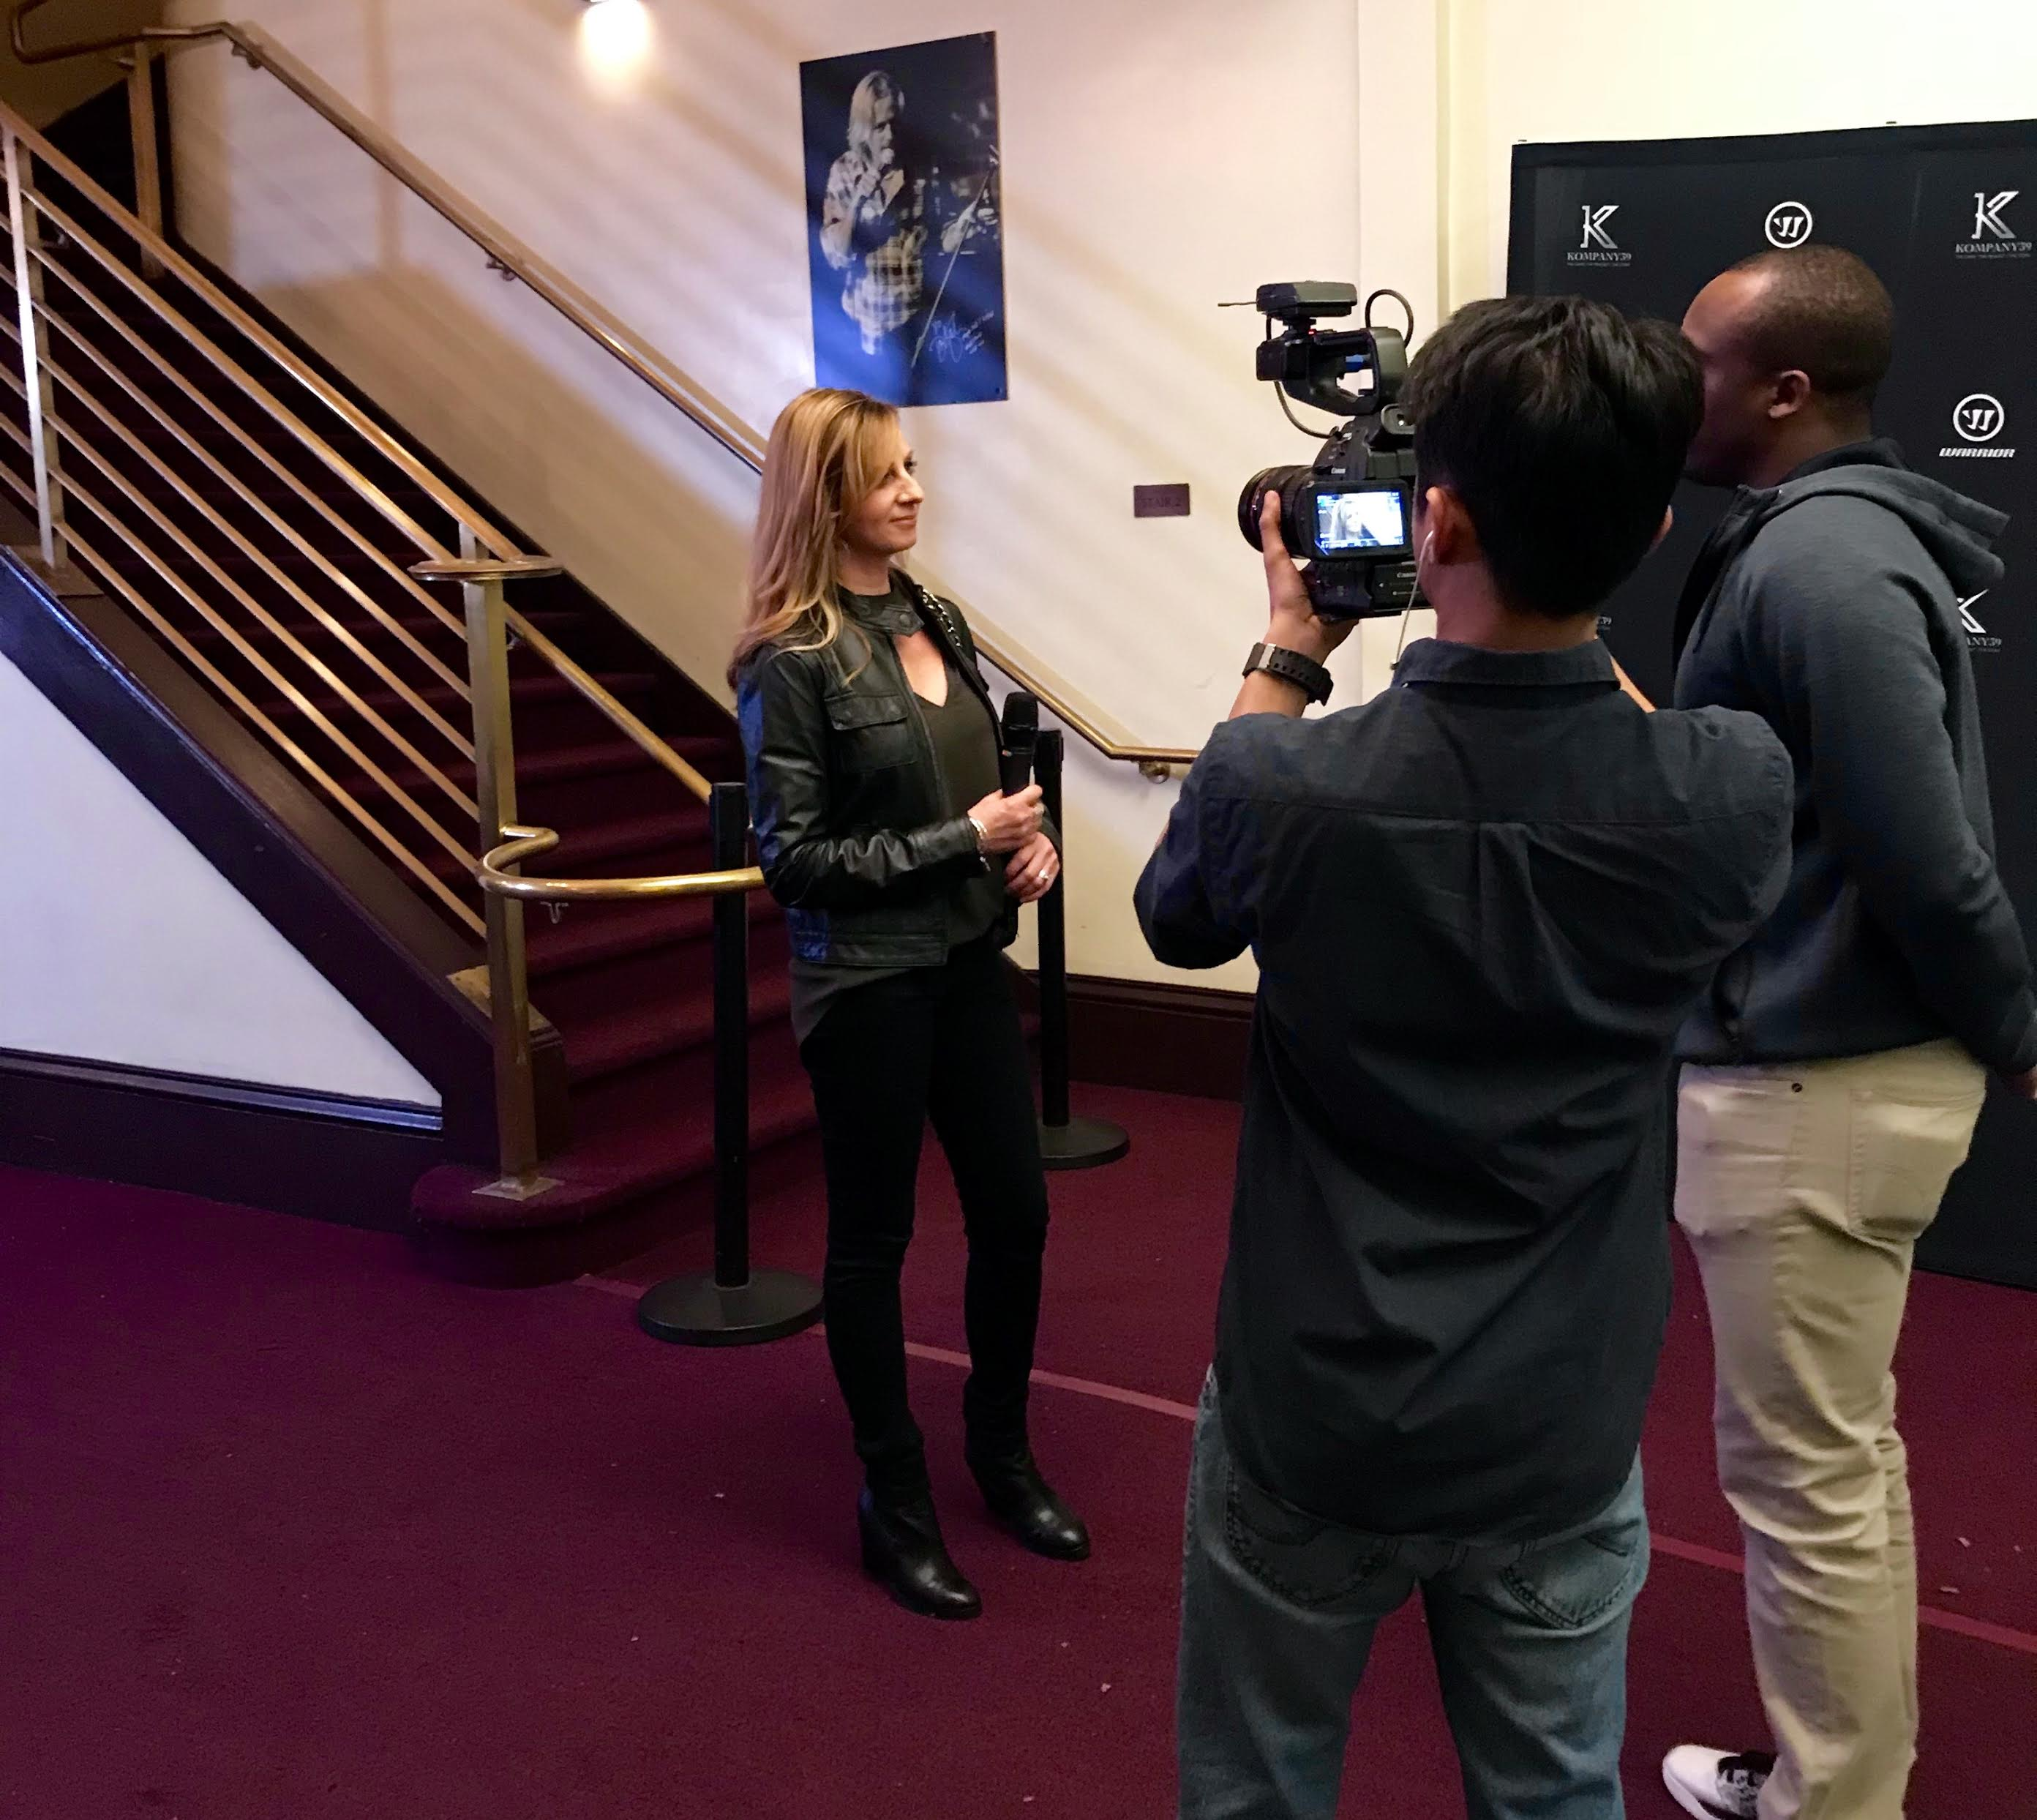 Cathy Andrade interviewed at Joe Pavelski Kompany39 event